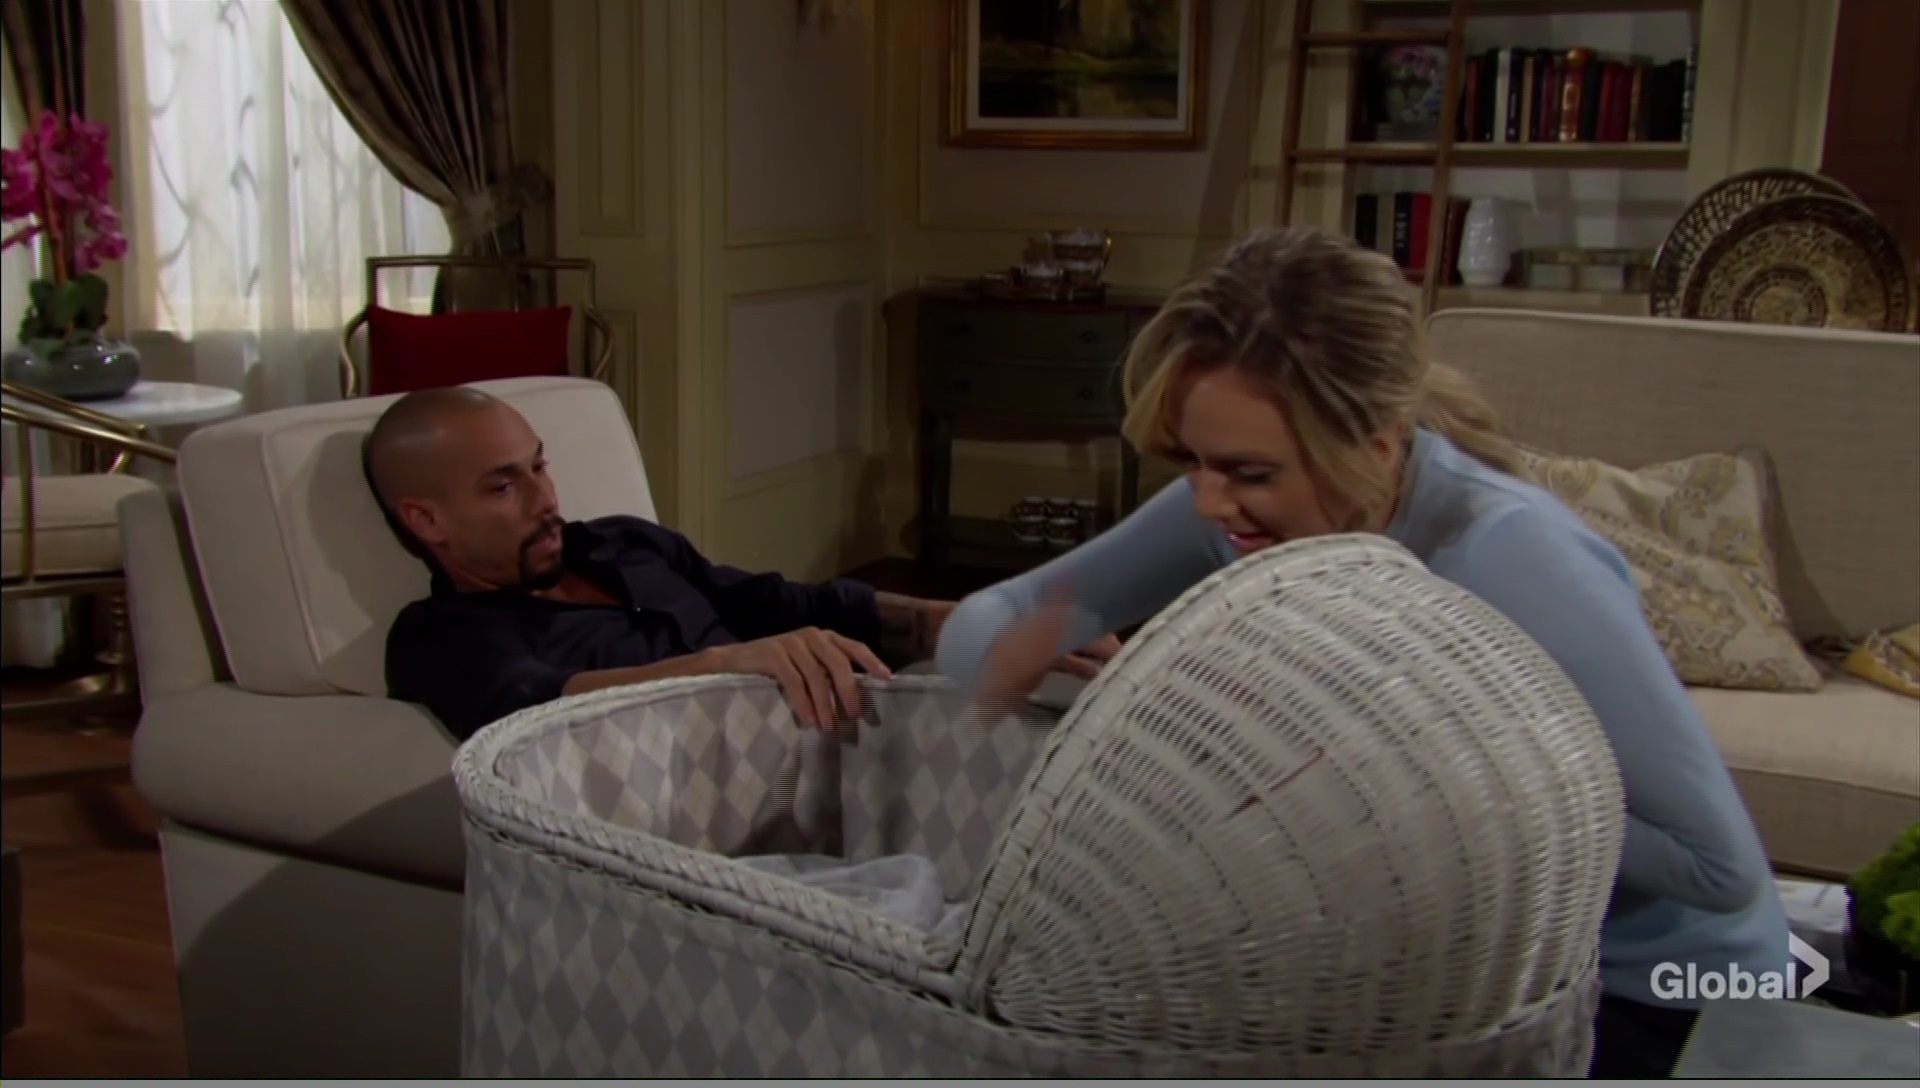 abby dom devon home young restless